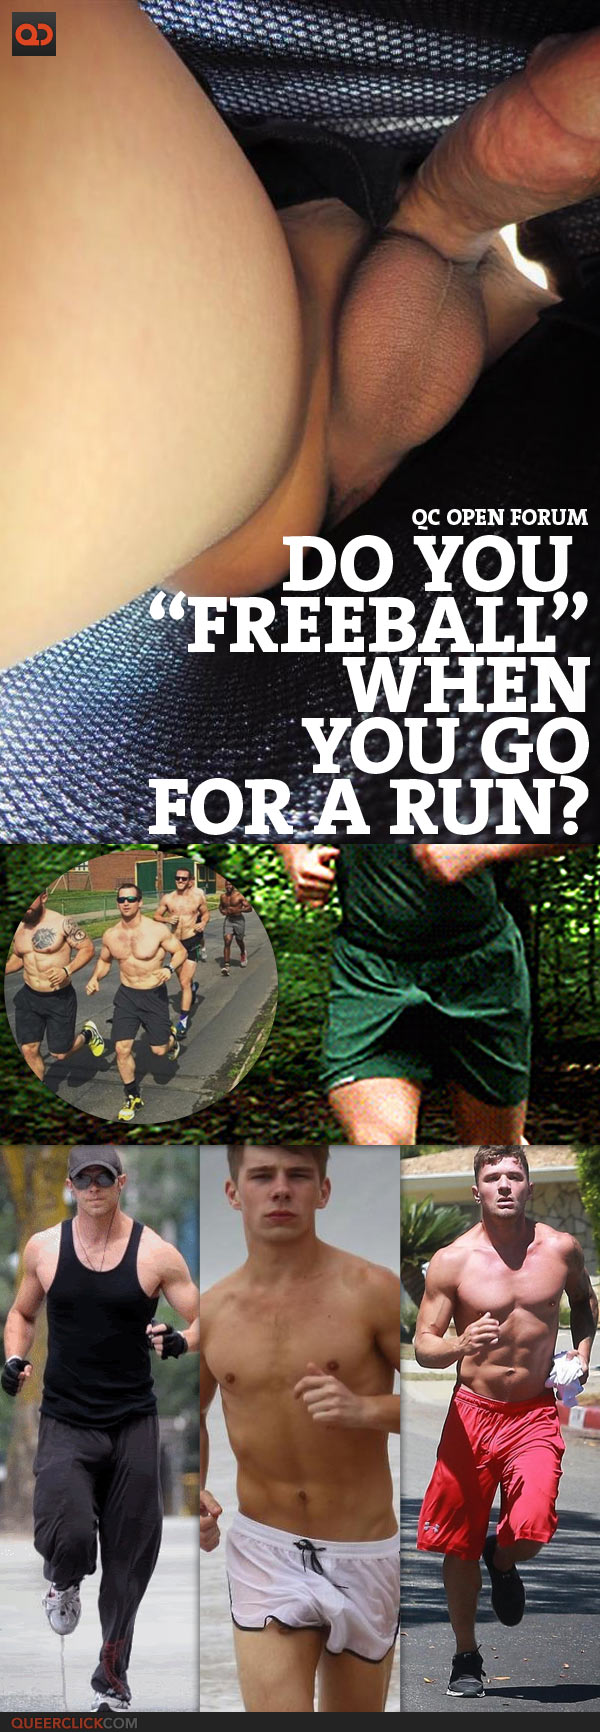 "QC Open Forum: Do You ""FreeBall"" When You Go For A Run?"